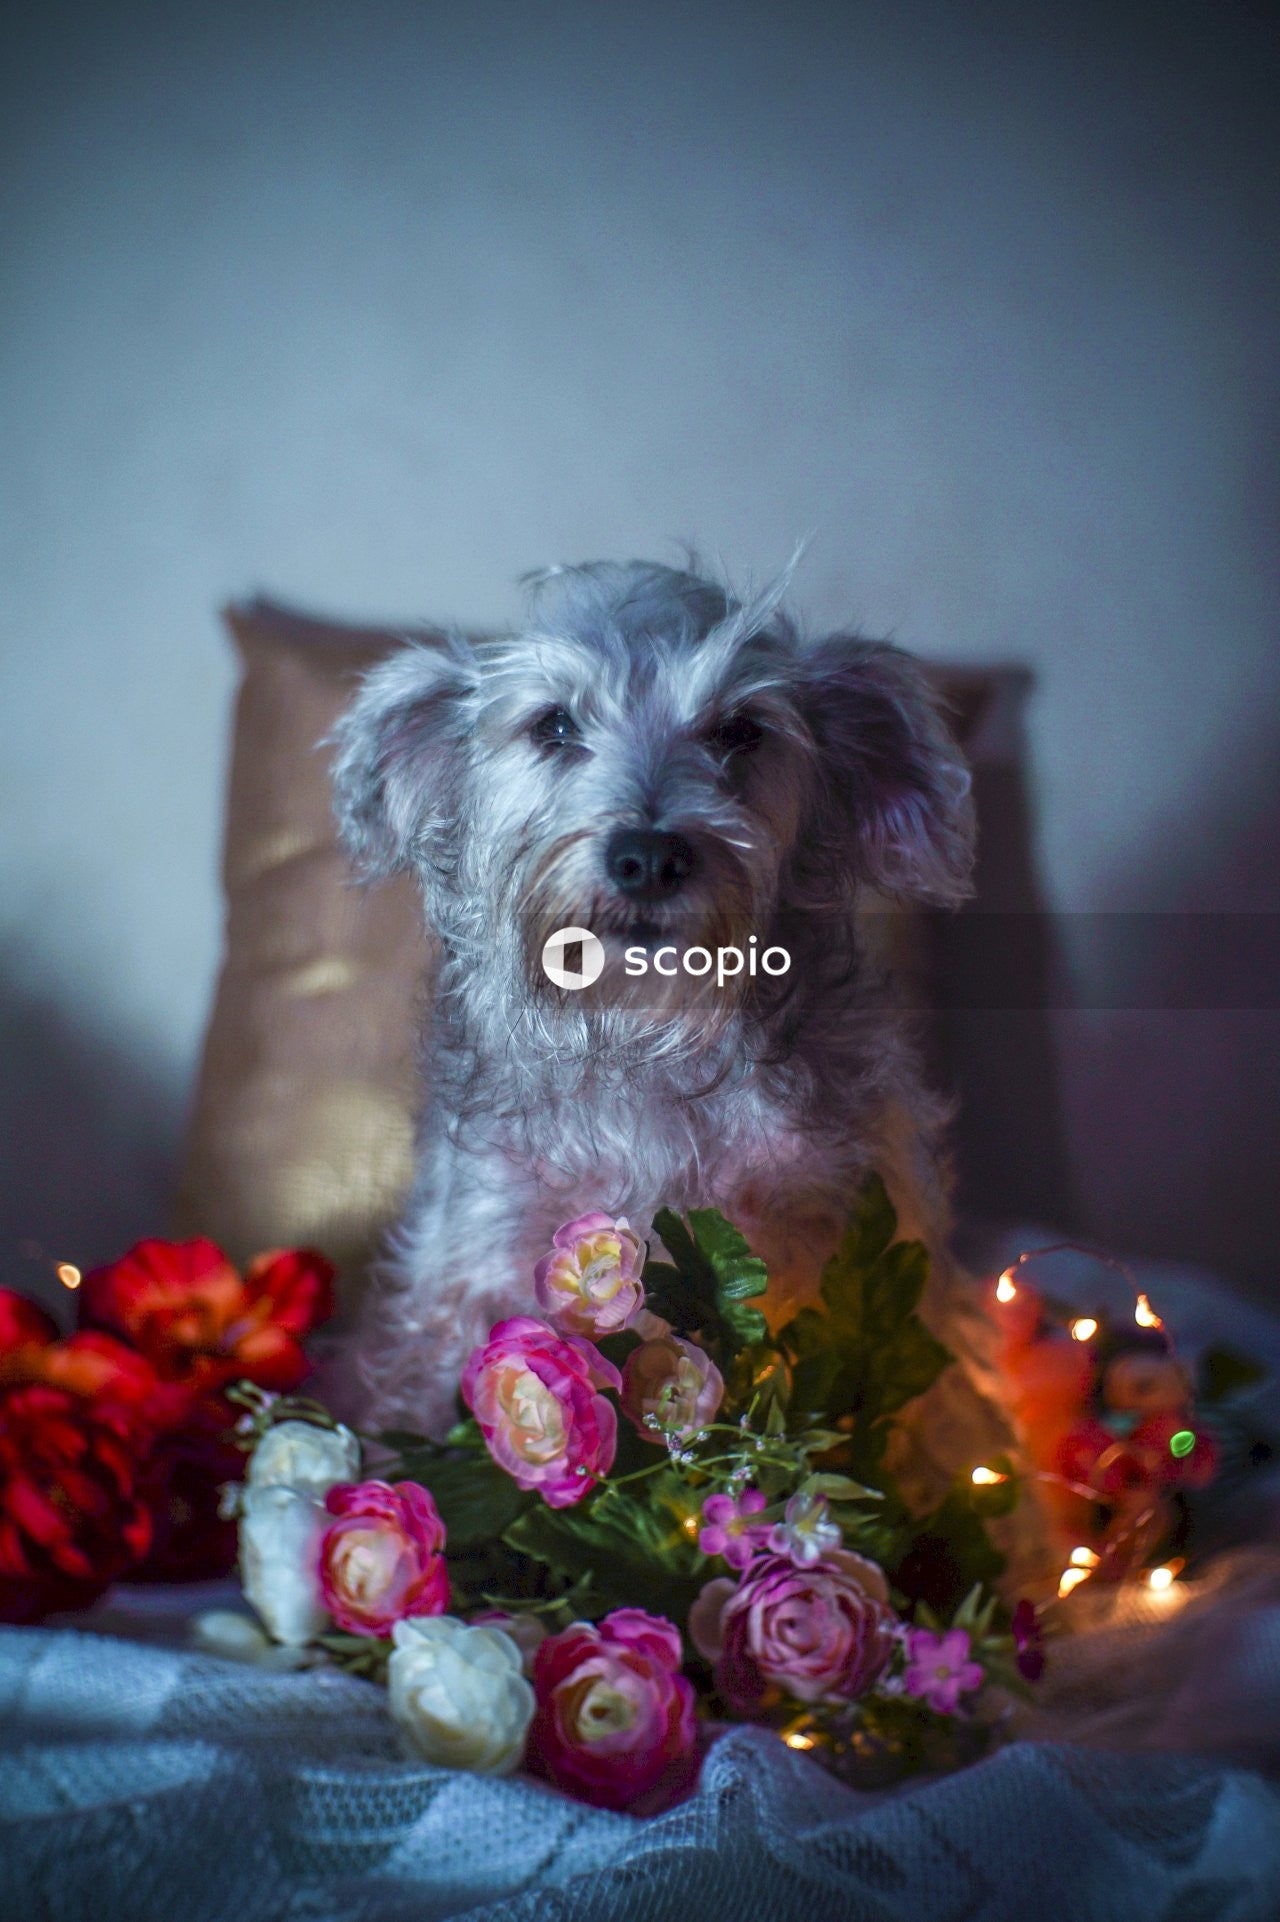 White and gray long coated small dog on red and white floral textile